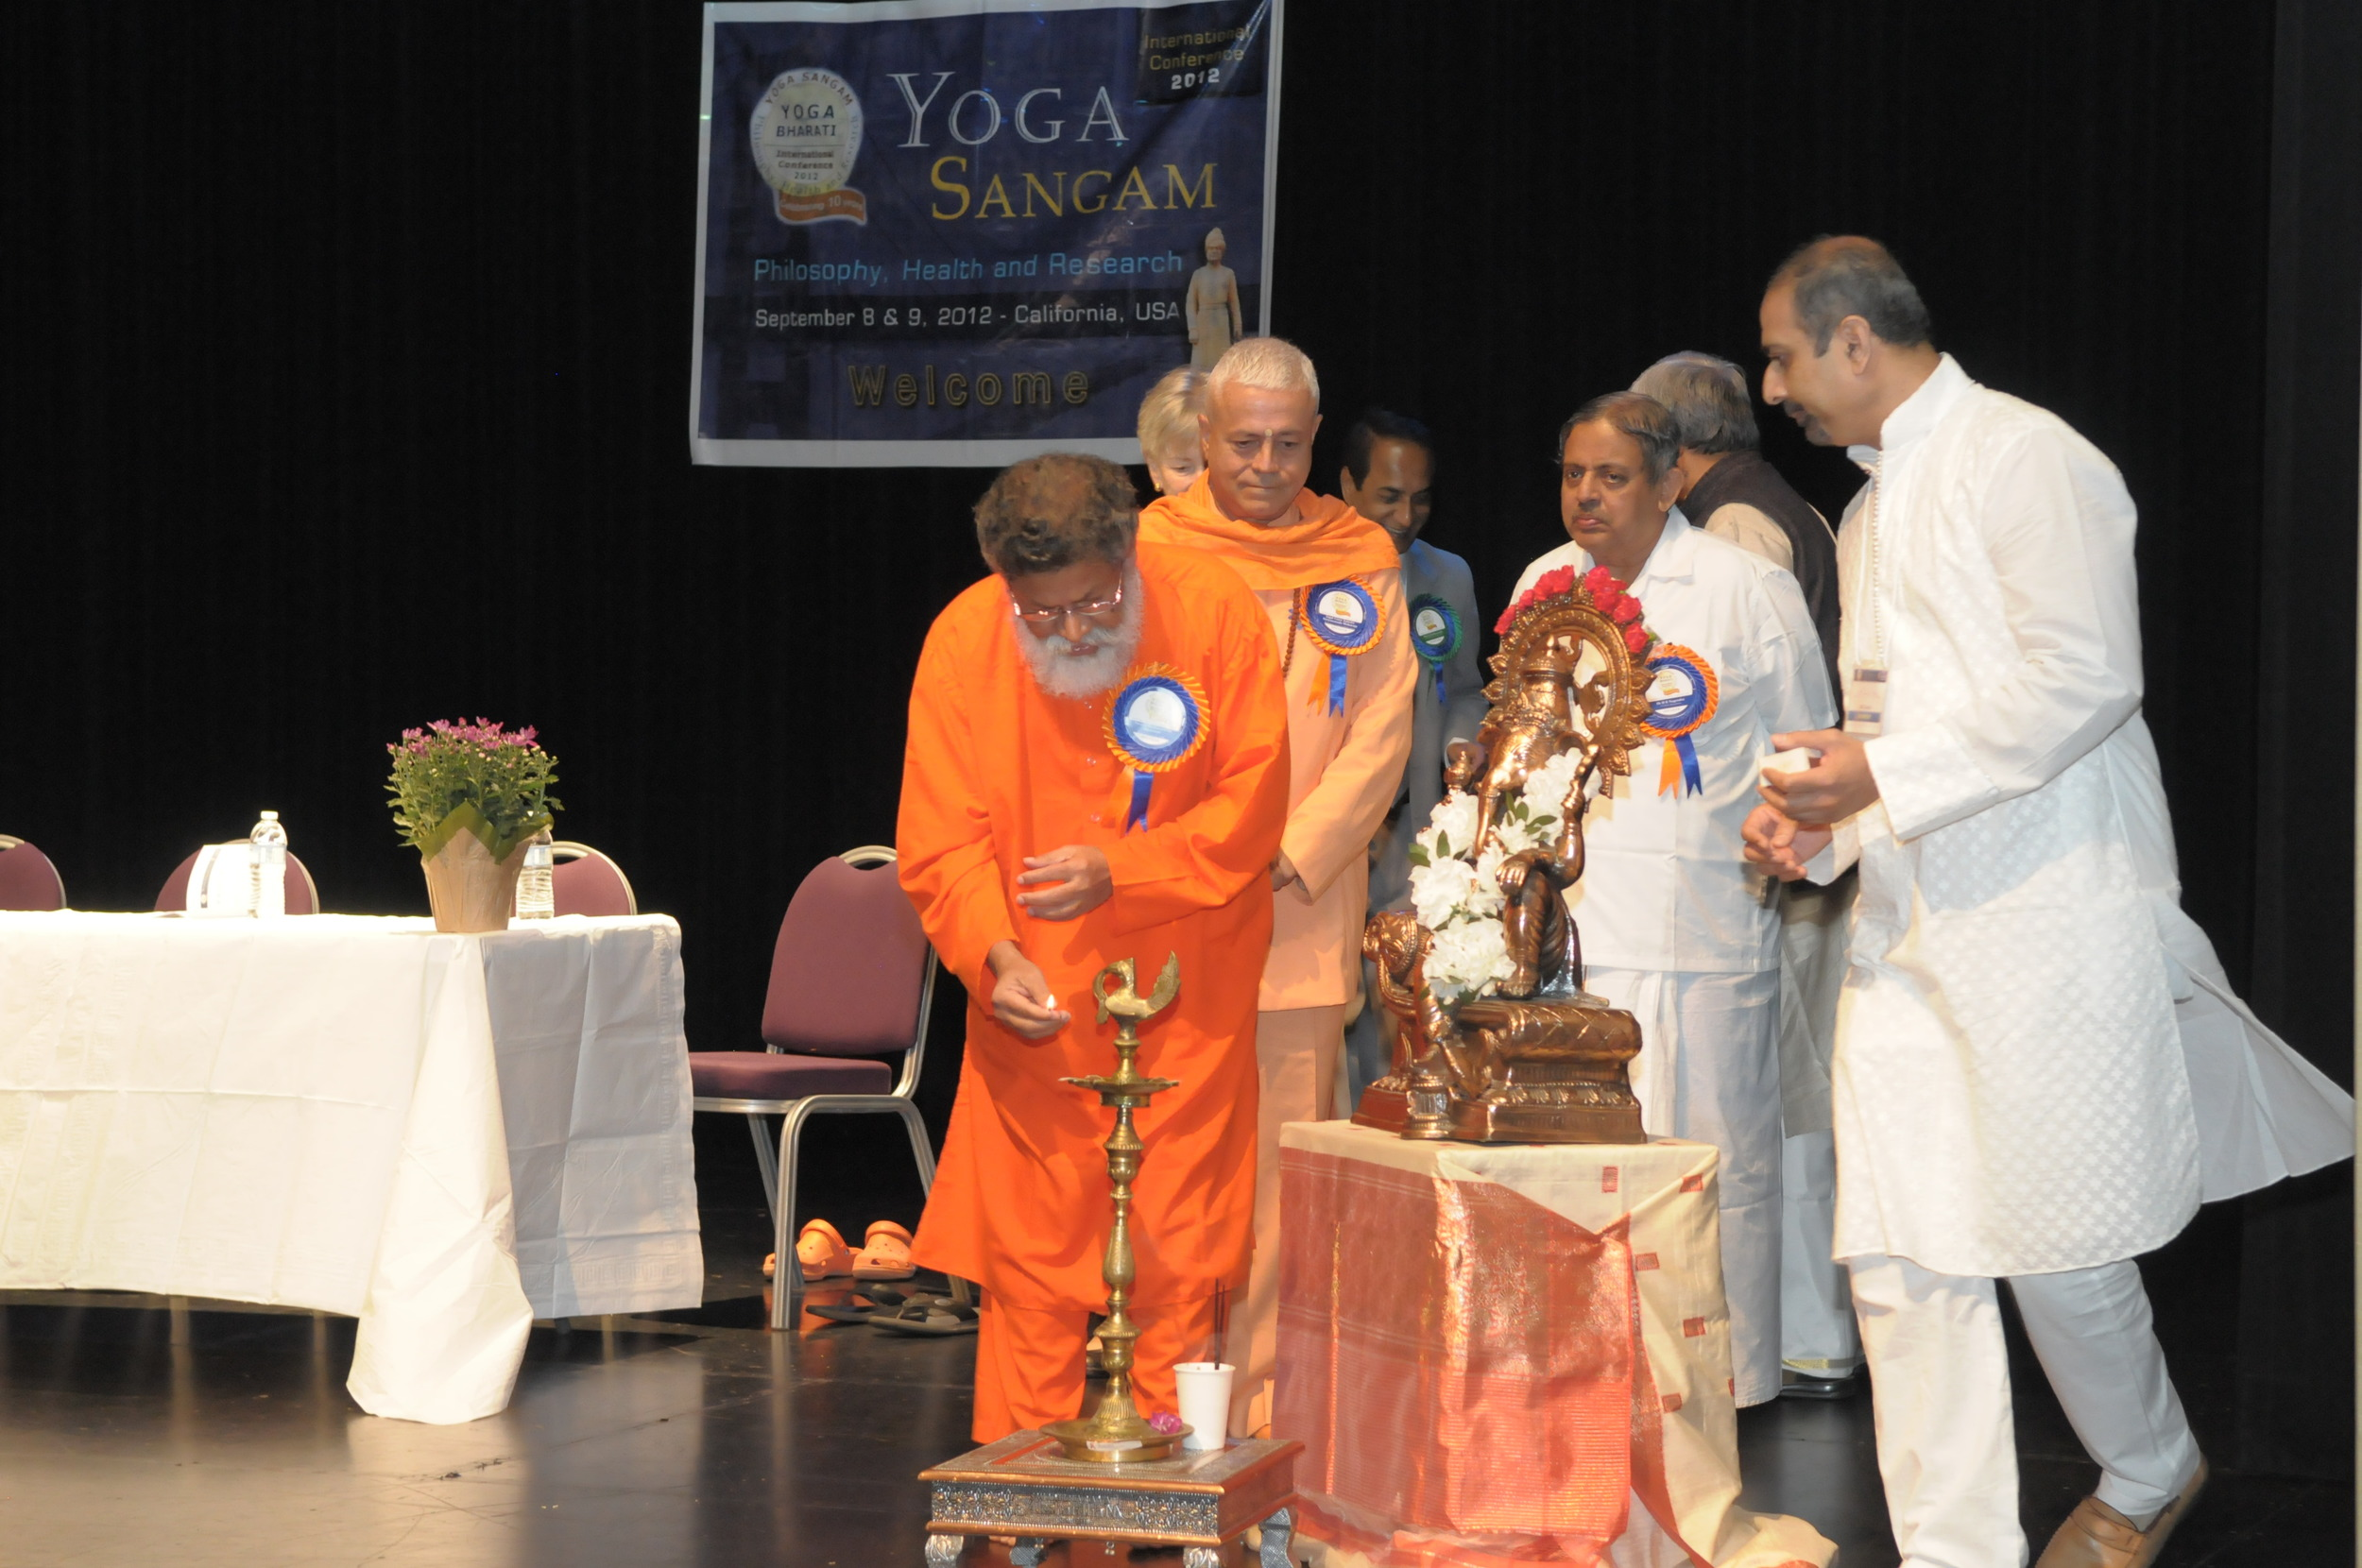 Our 2012 International Conference - Yoga Sangam